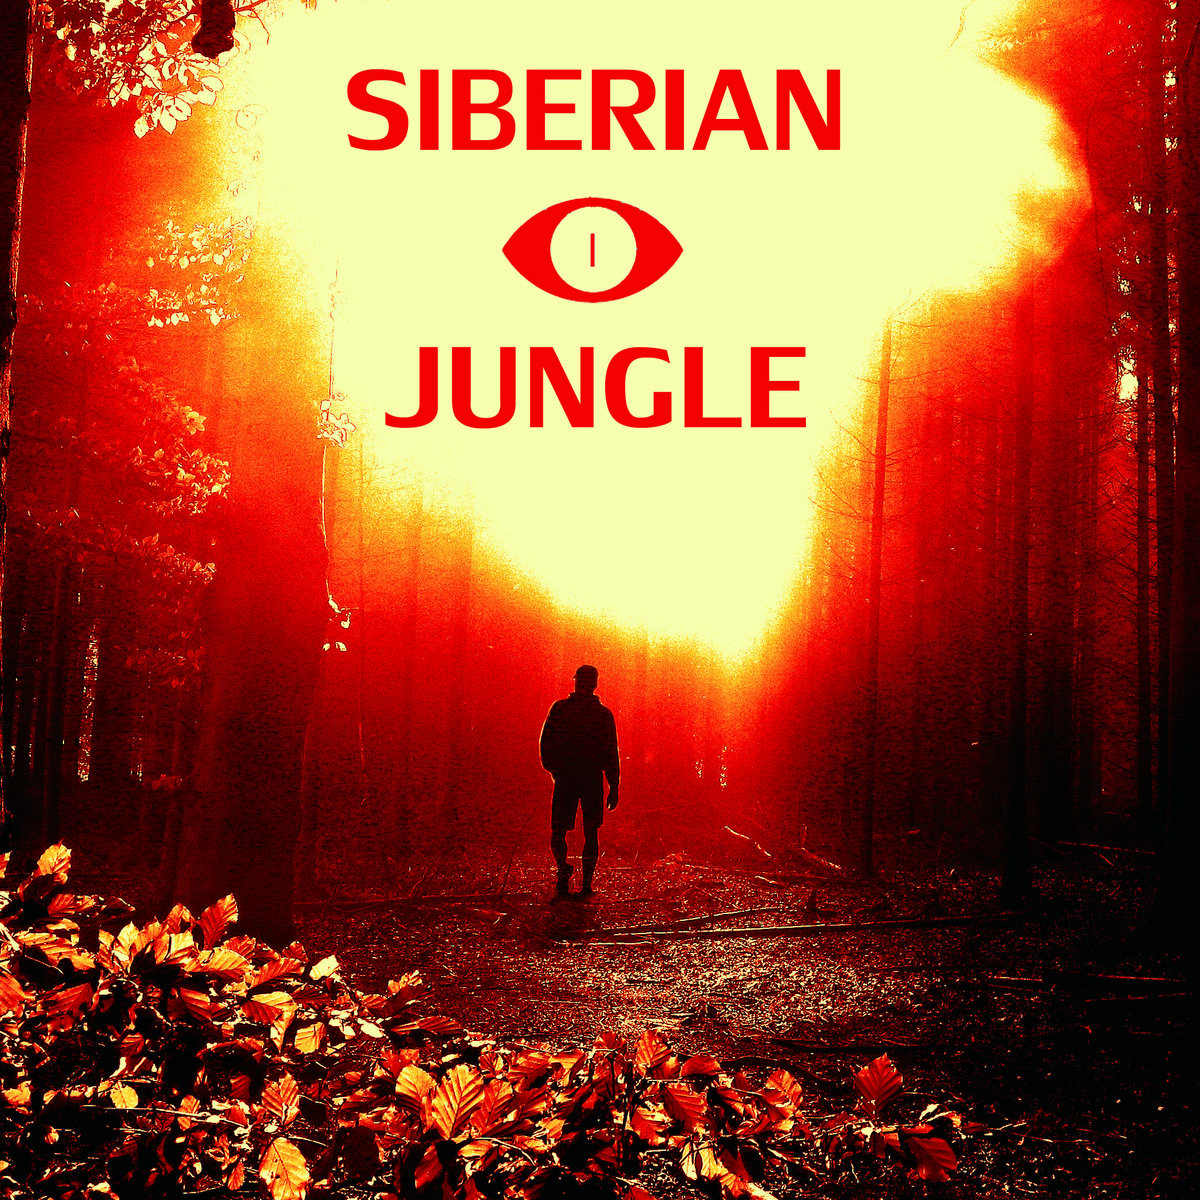 3D Stas - Surface of Doomed Planet @ 'Siberian Jungle - Volume 1' album (atmospheric drum'n'bass, electronic)